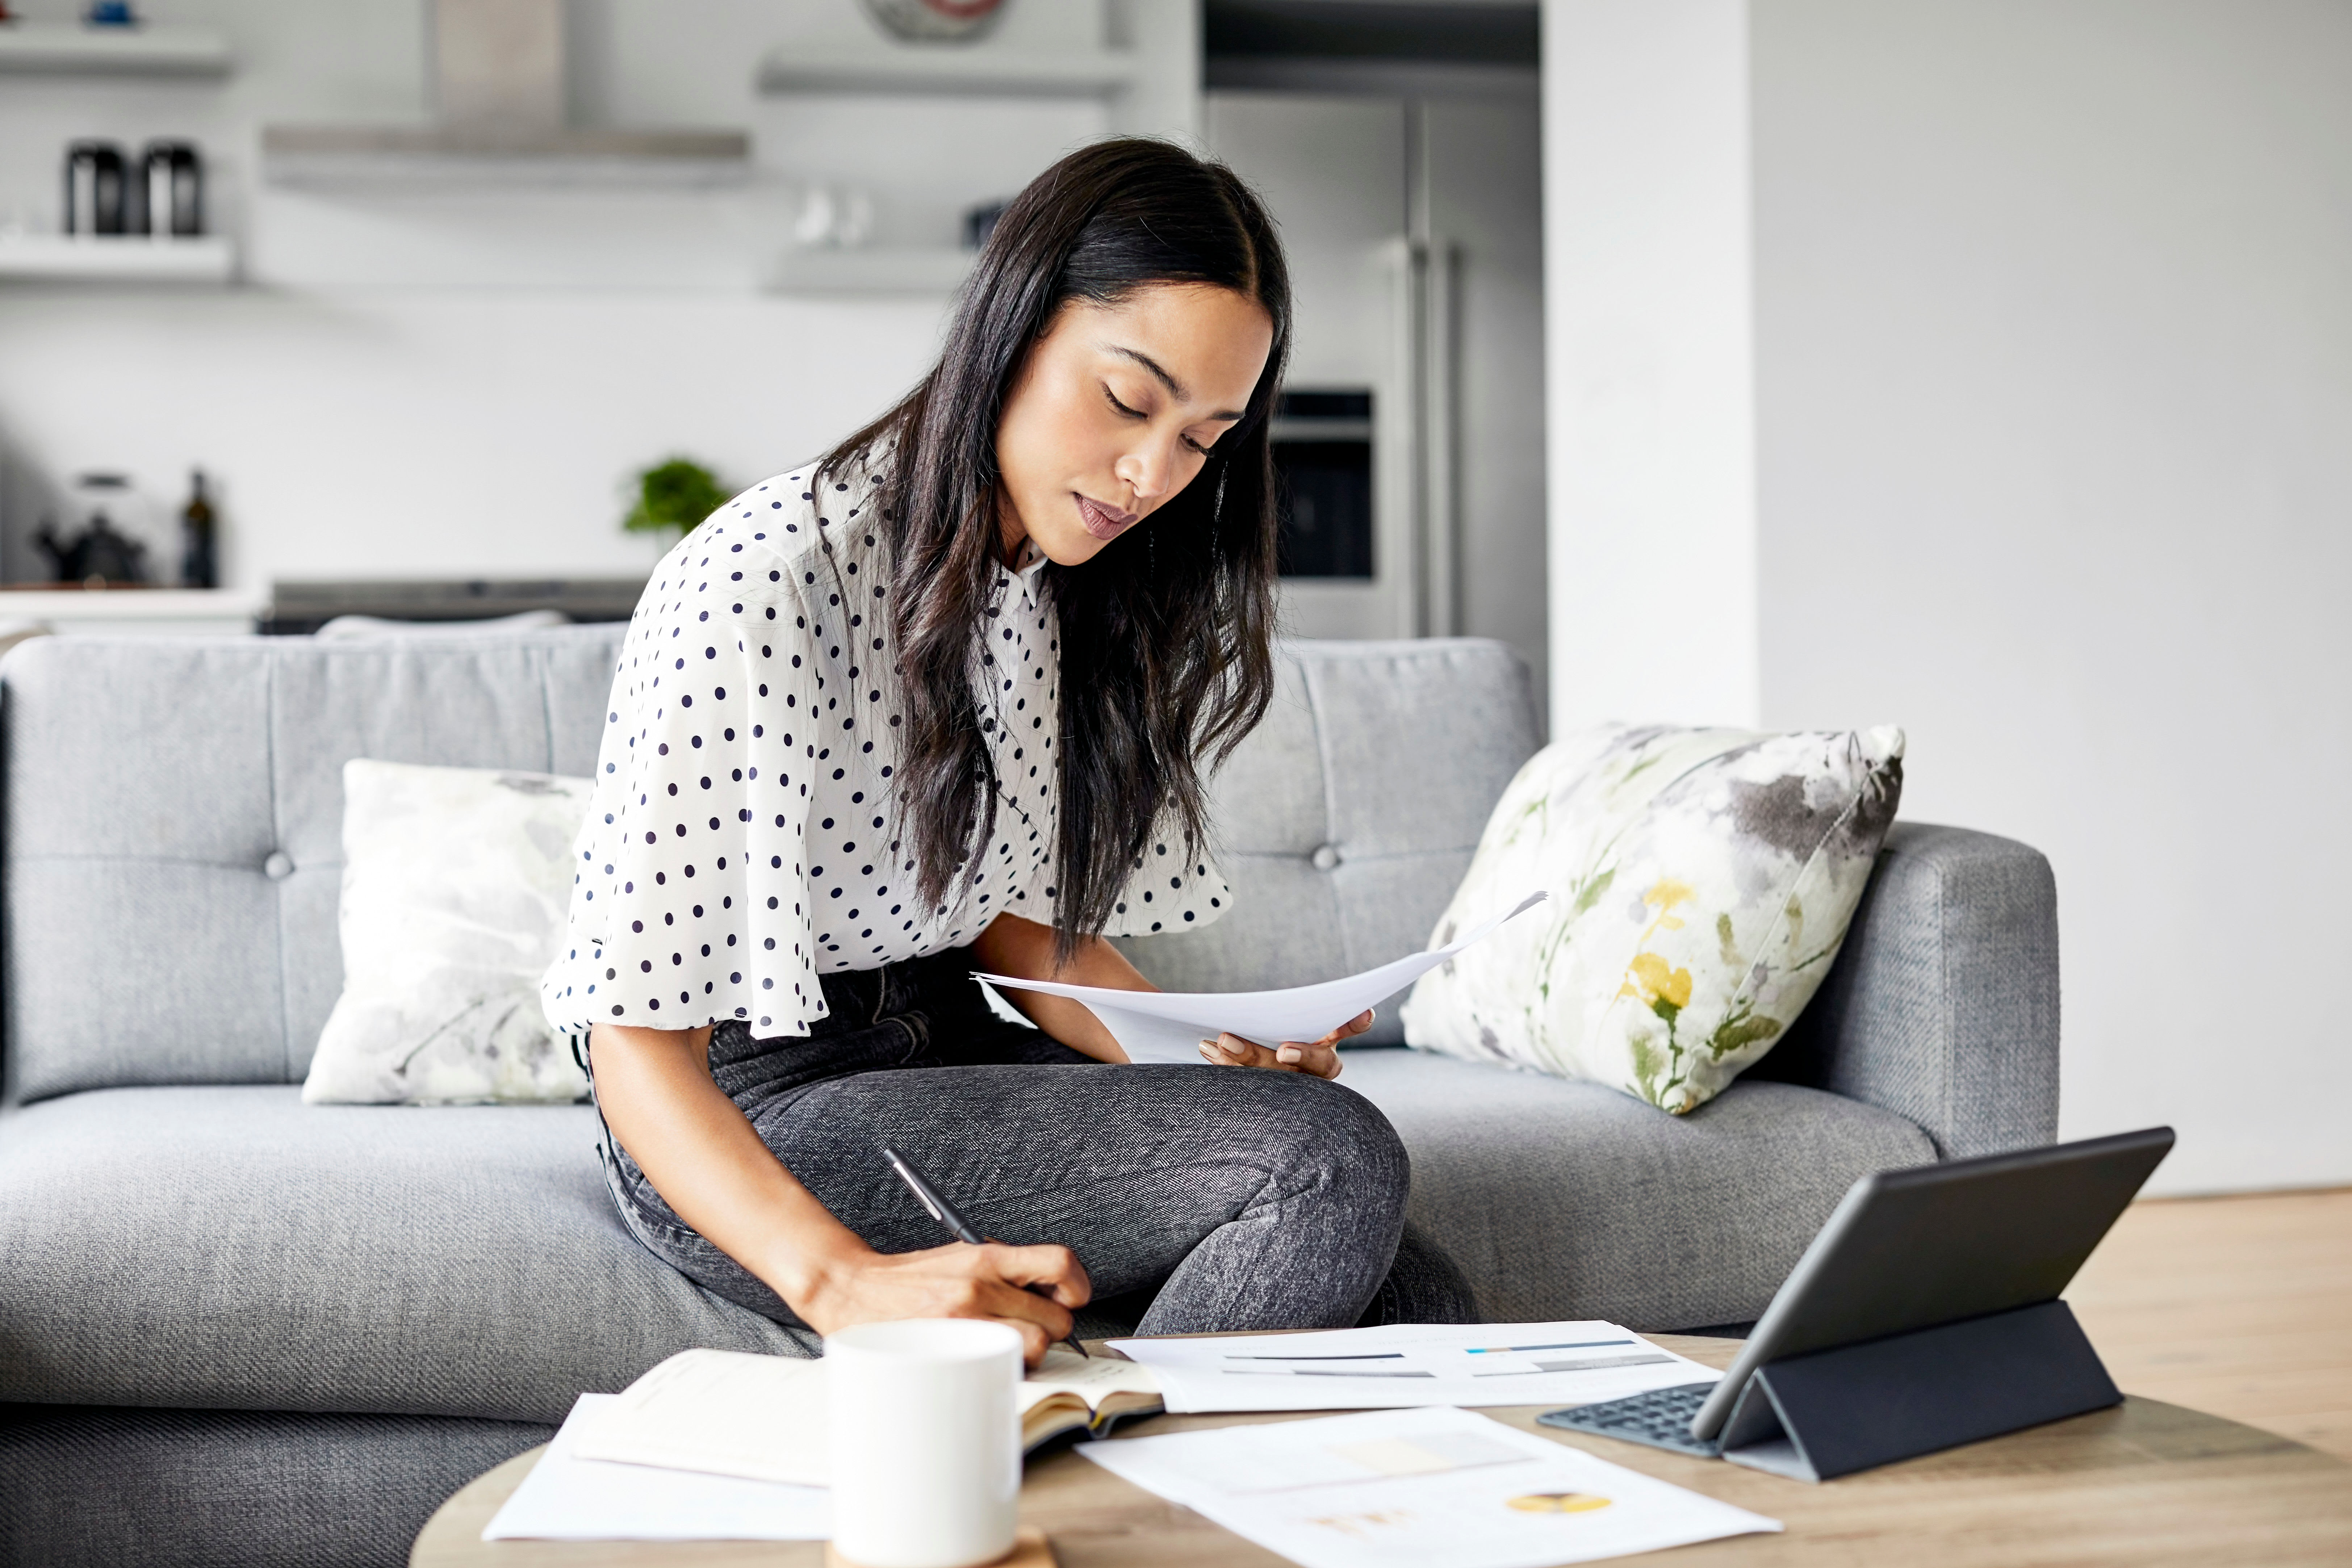 Woman working from home at The Residences at Sawmill Station in Morton Grove, Illinois